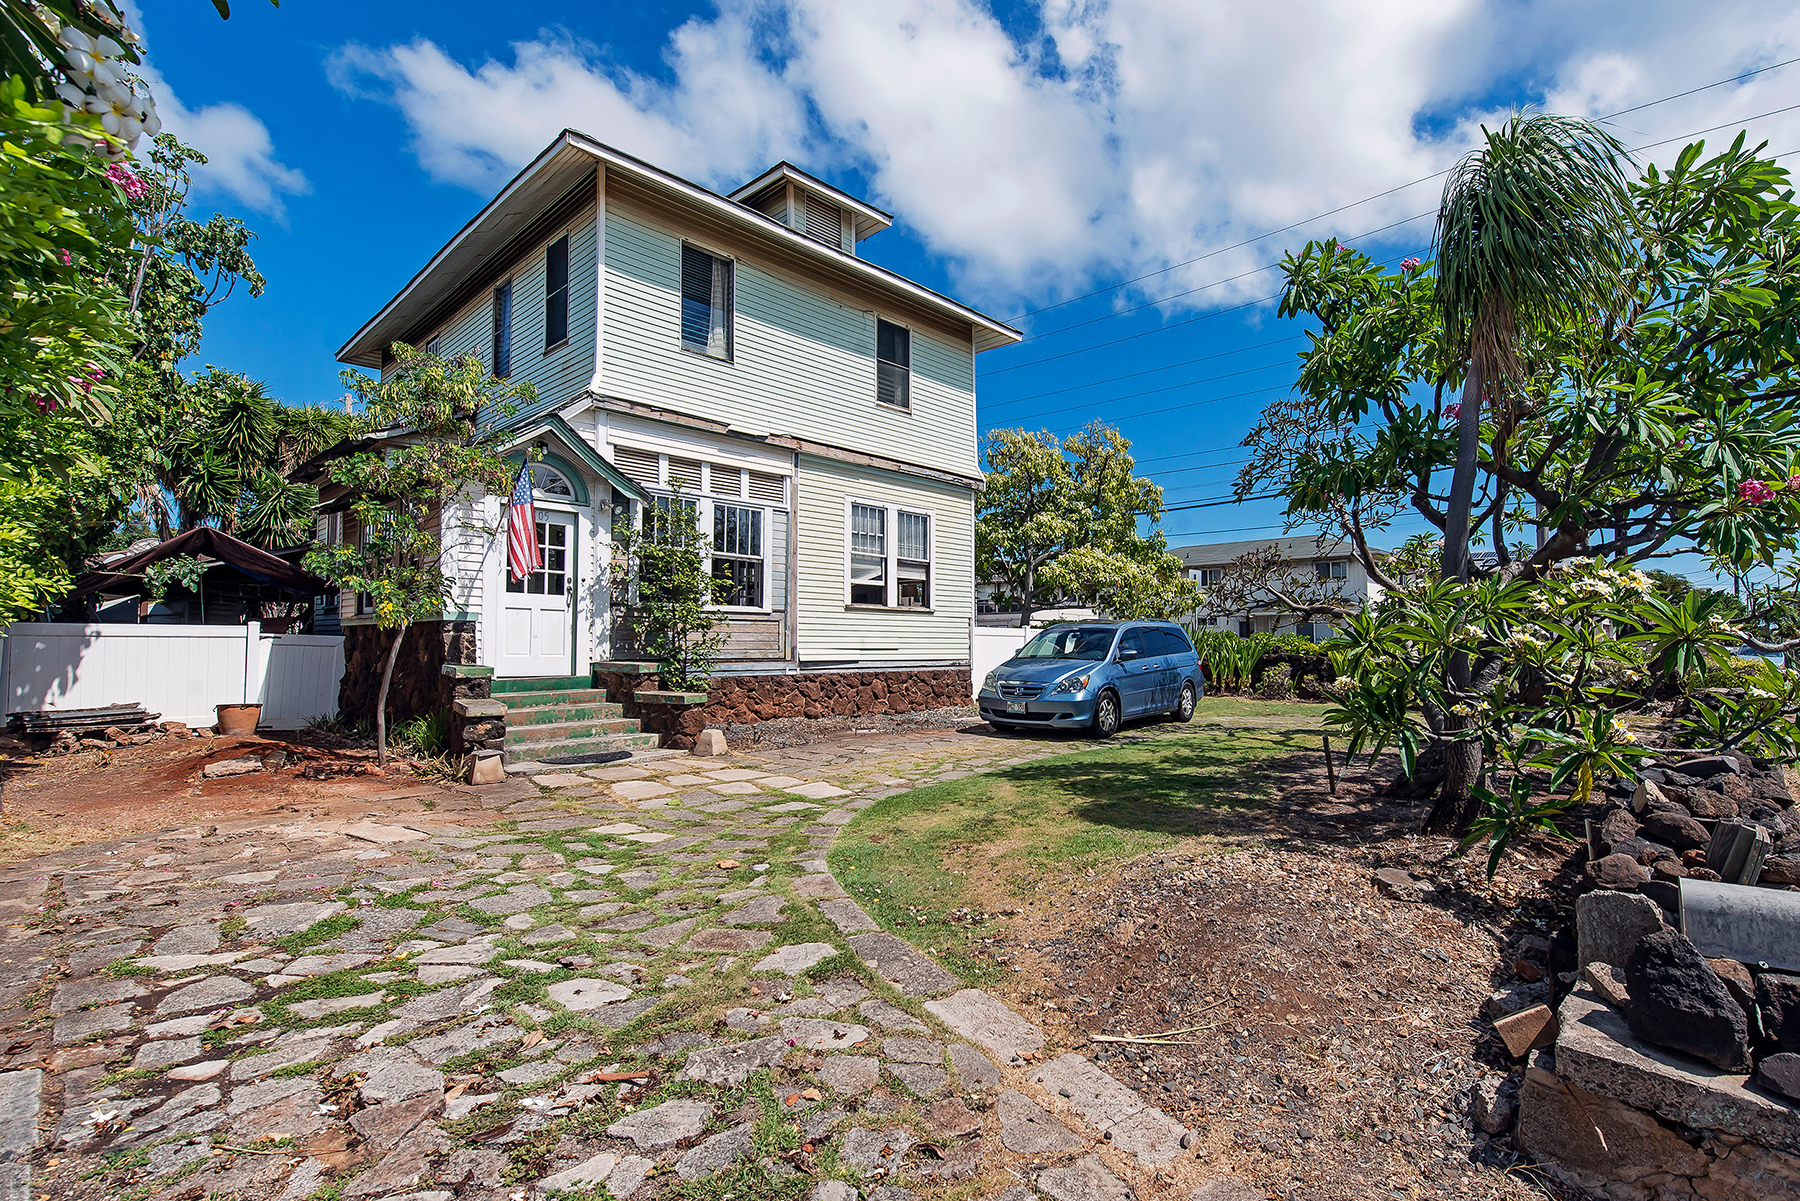 Single Family Home for Sale at One-of-A-Kind Home 1105 8th Avenue Kaimuki, Honolulu, Hawaii 96816 United States